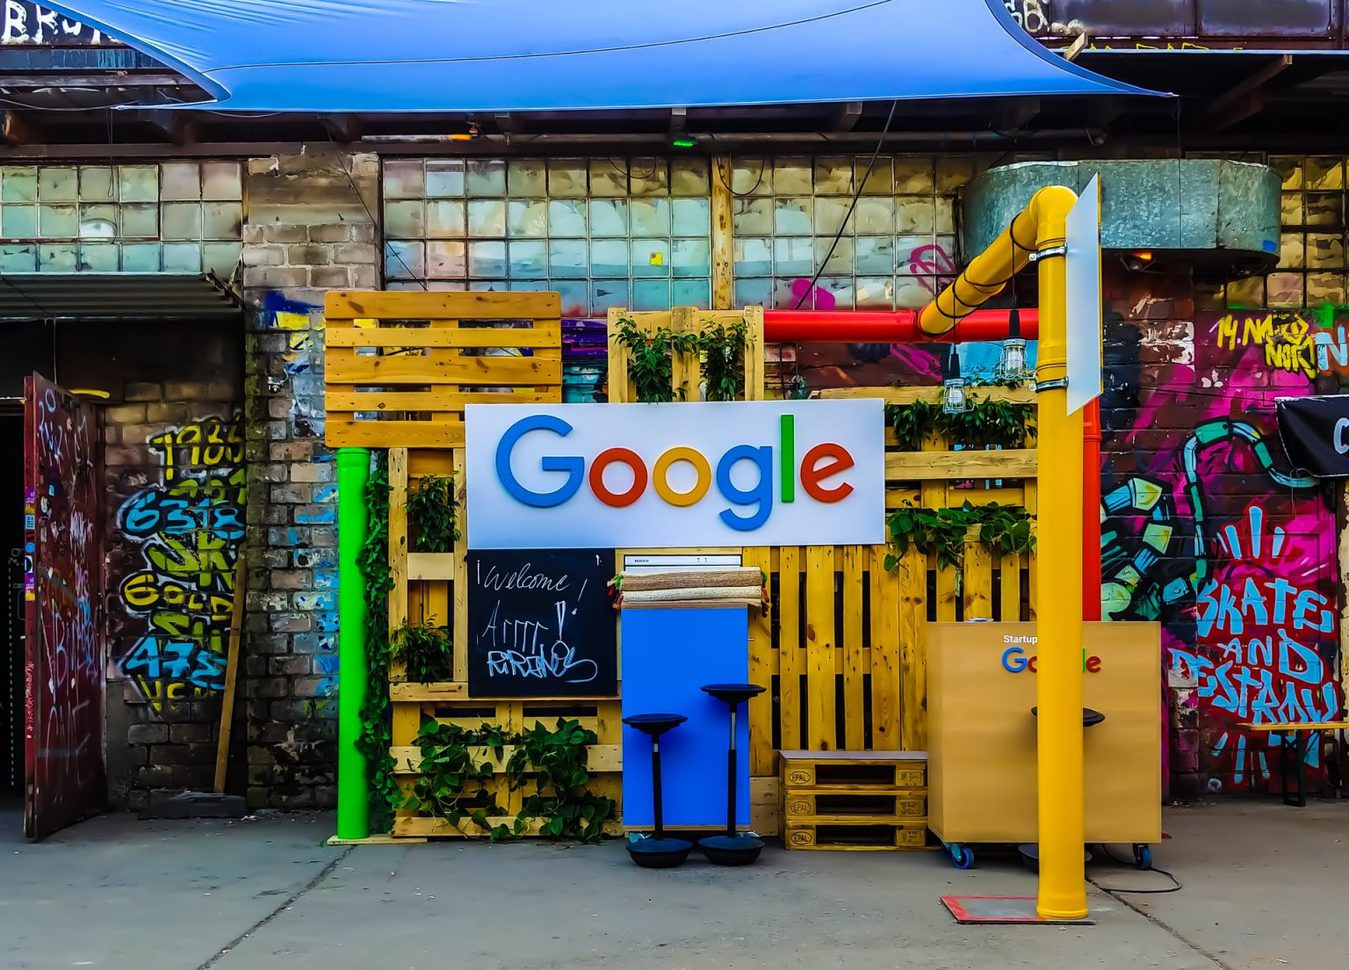 Google sign on a colorful street